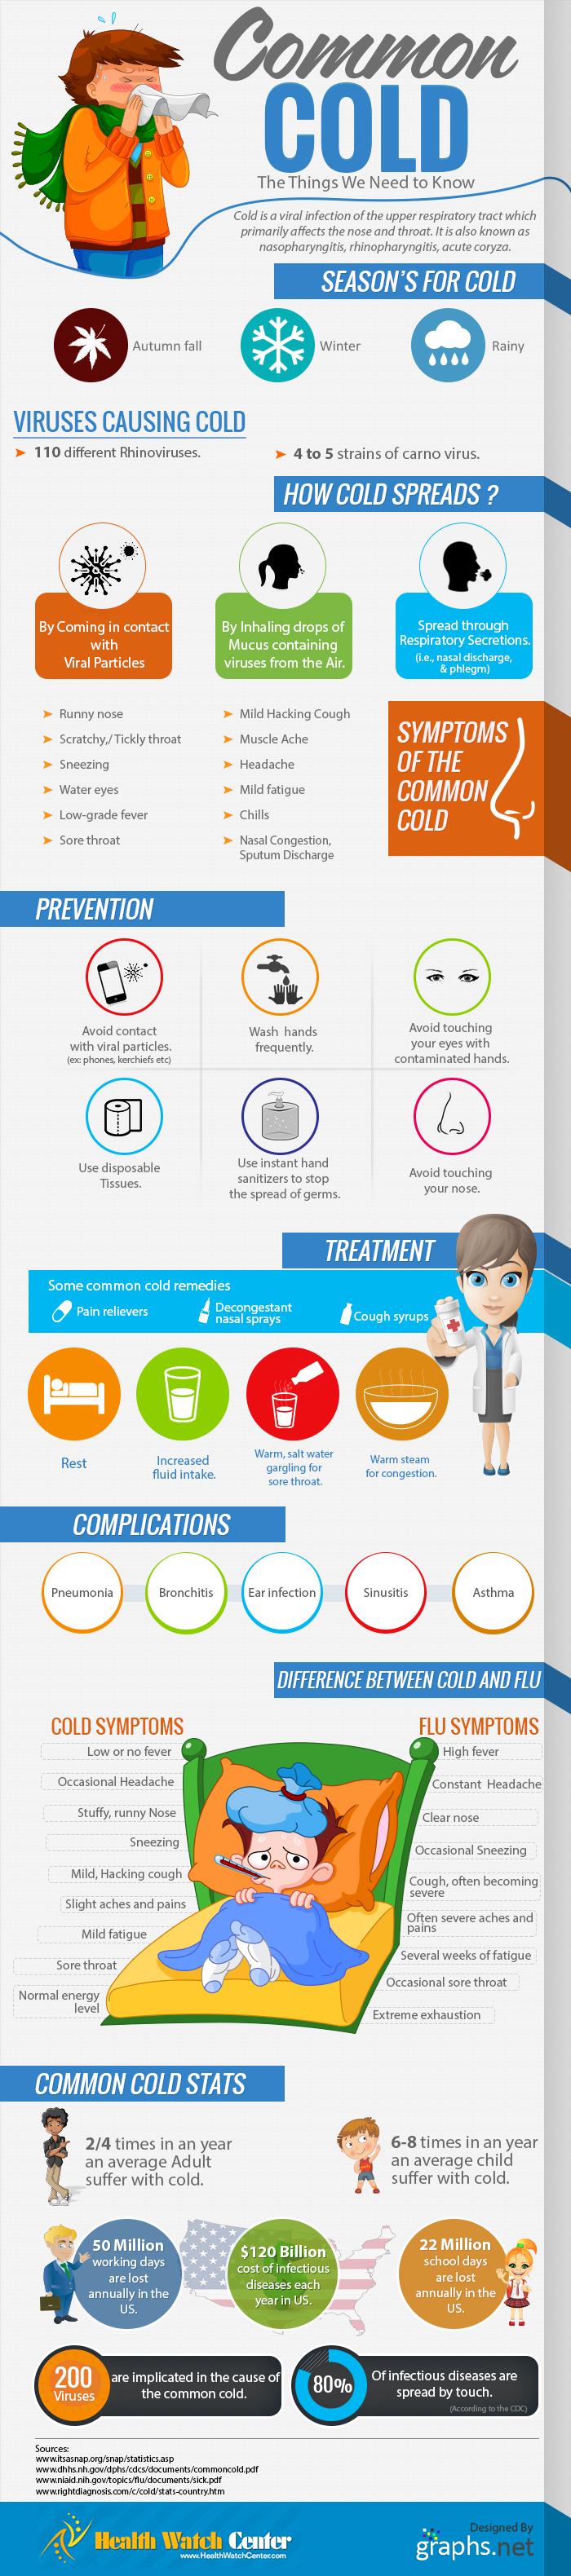 Cold a Common illness and its Symptoms